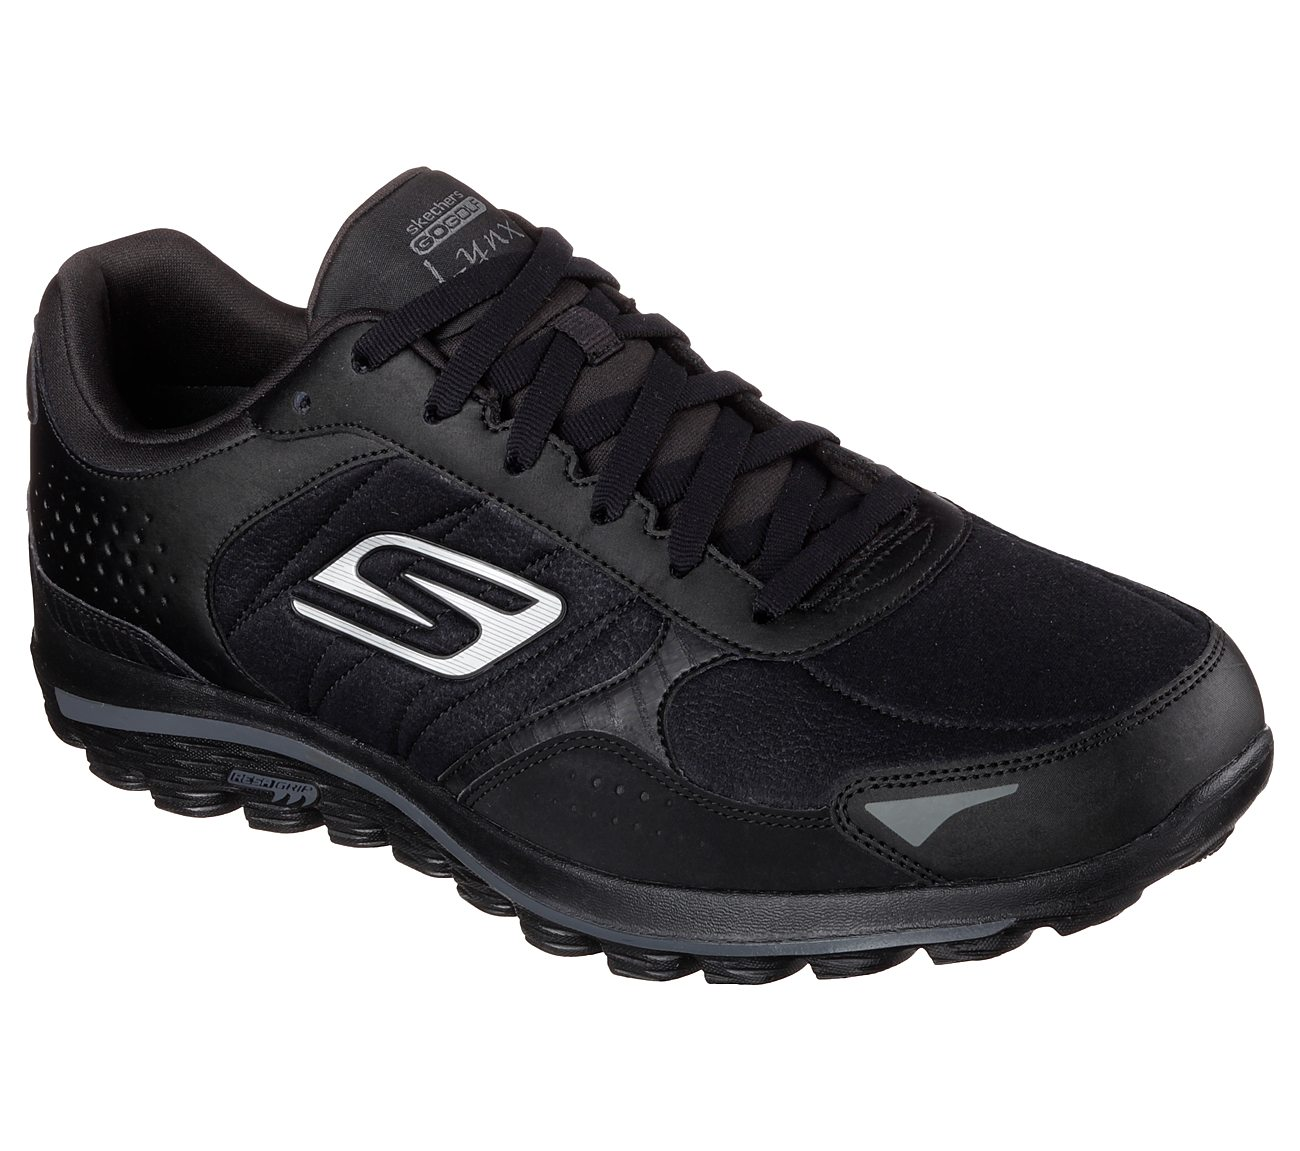 89721167d189ef Buy SKECHERS Skechers GOwalk 2 Golf - Lynx LT Skechers Performance ...